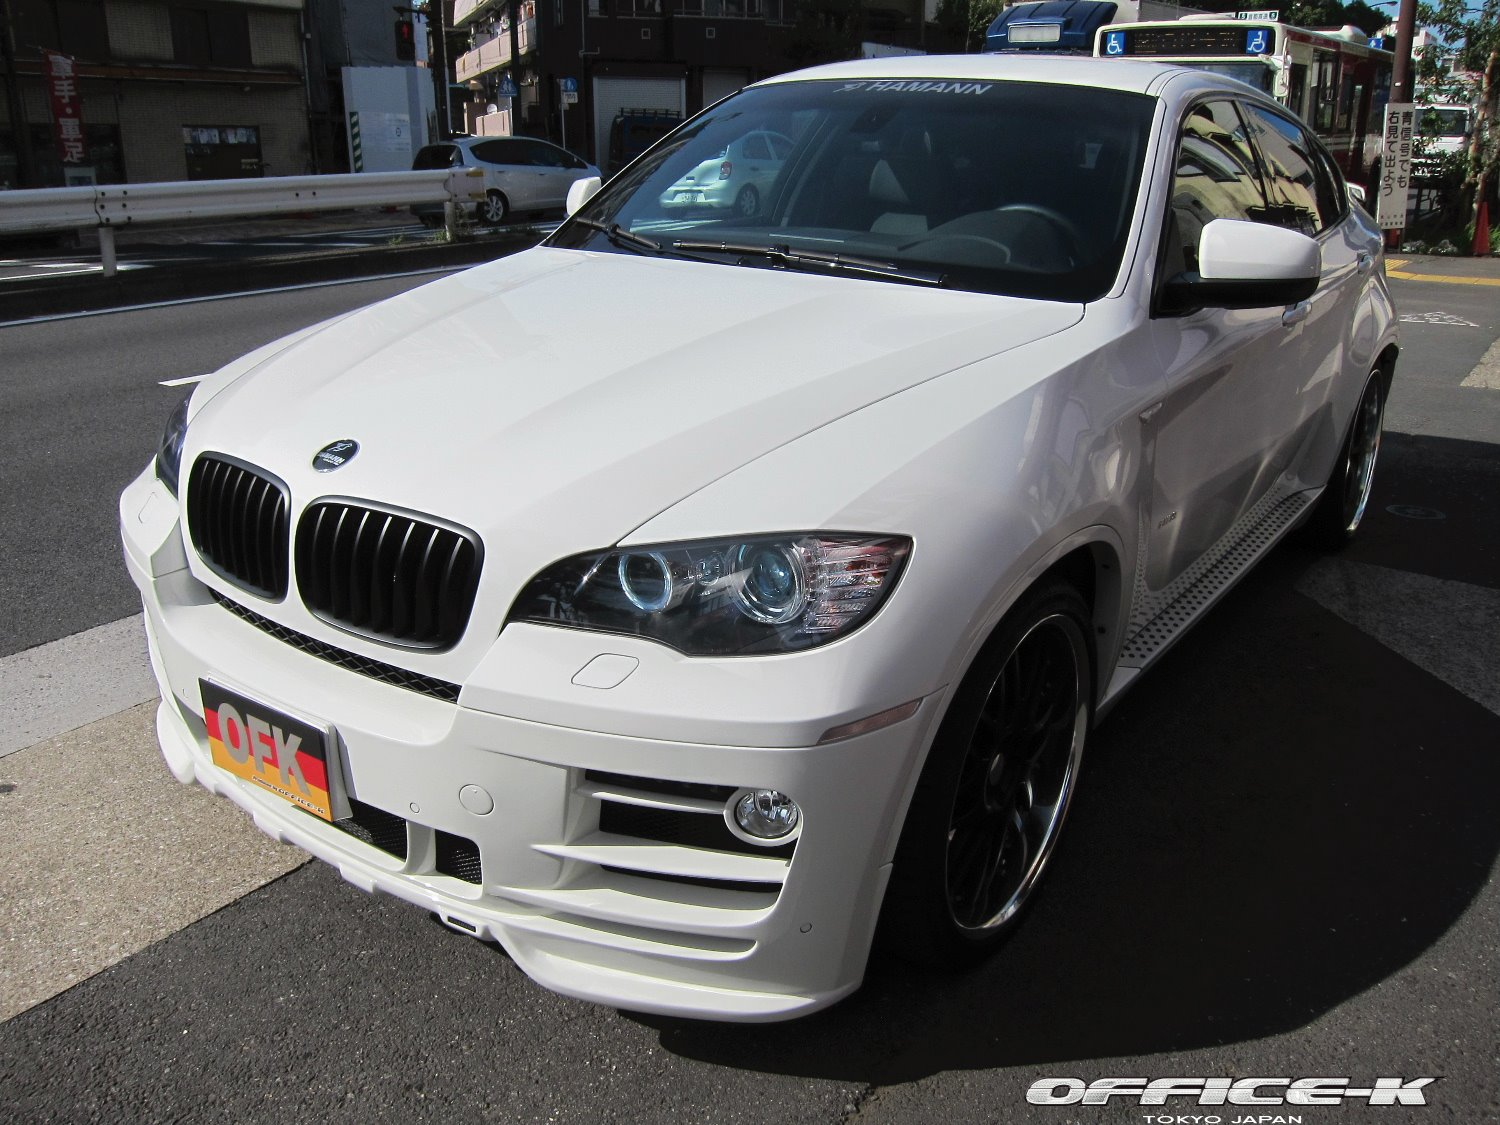 Office-K Custom BMW X6 - autoevolution